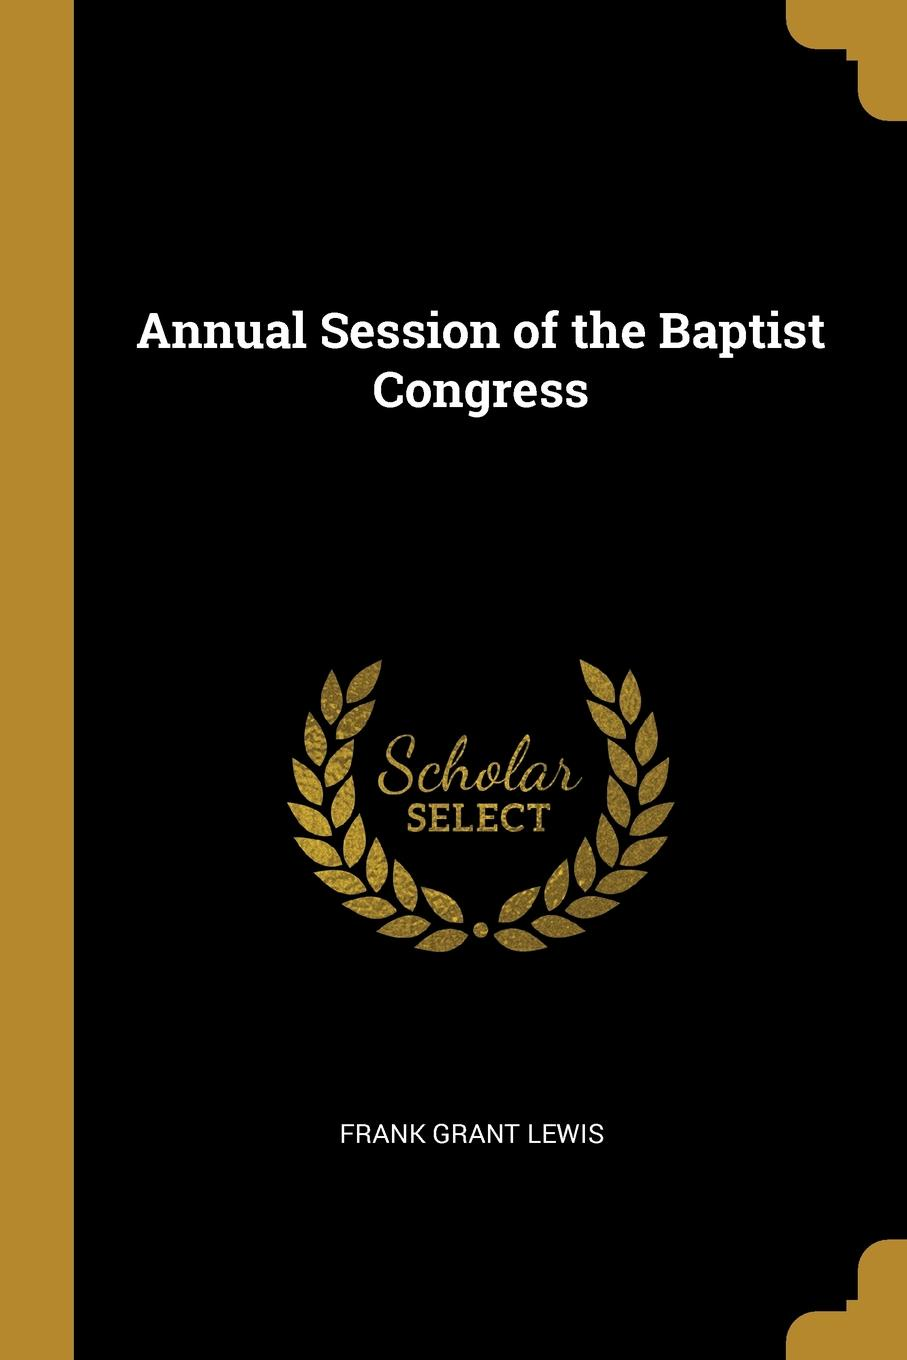 Frank Grant Lewis. Annual Session of the Baptist Congress